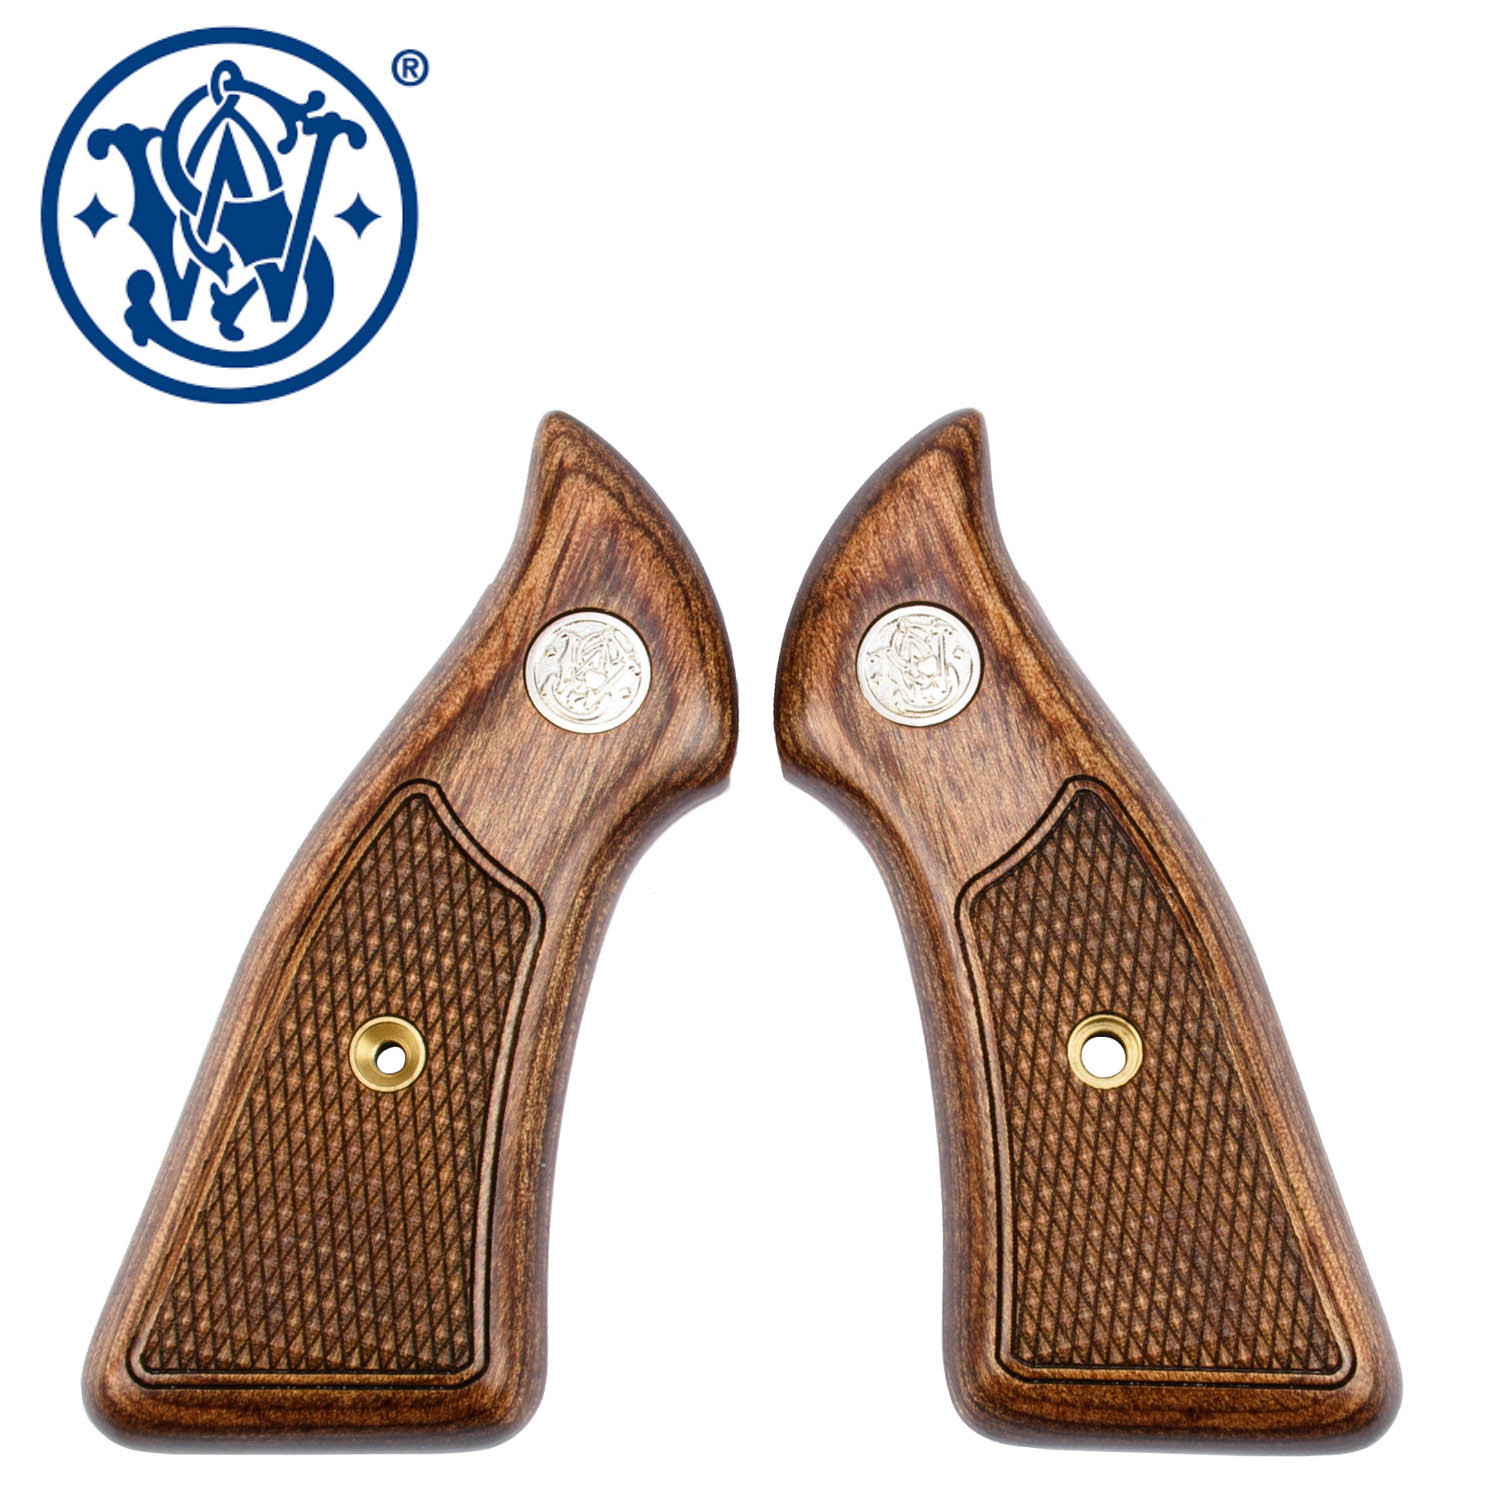 Smith & Wesson J-Frame Grips, Square Butt, Dymondwood: MGW